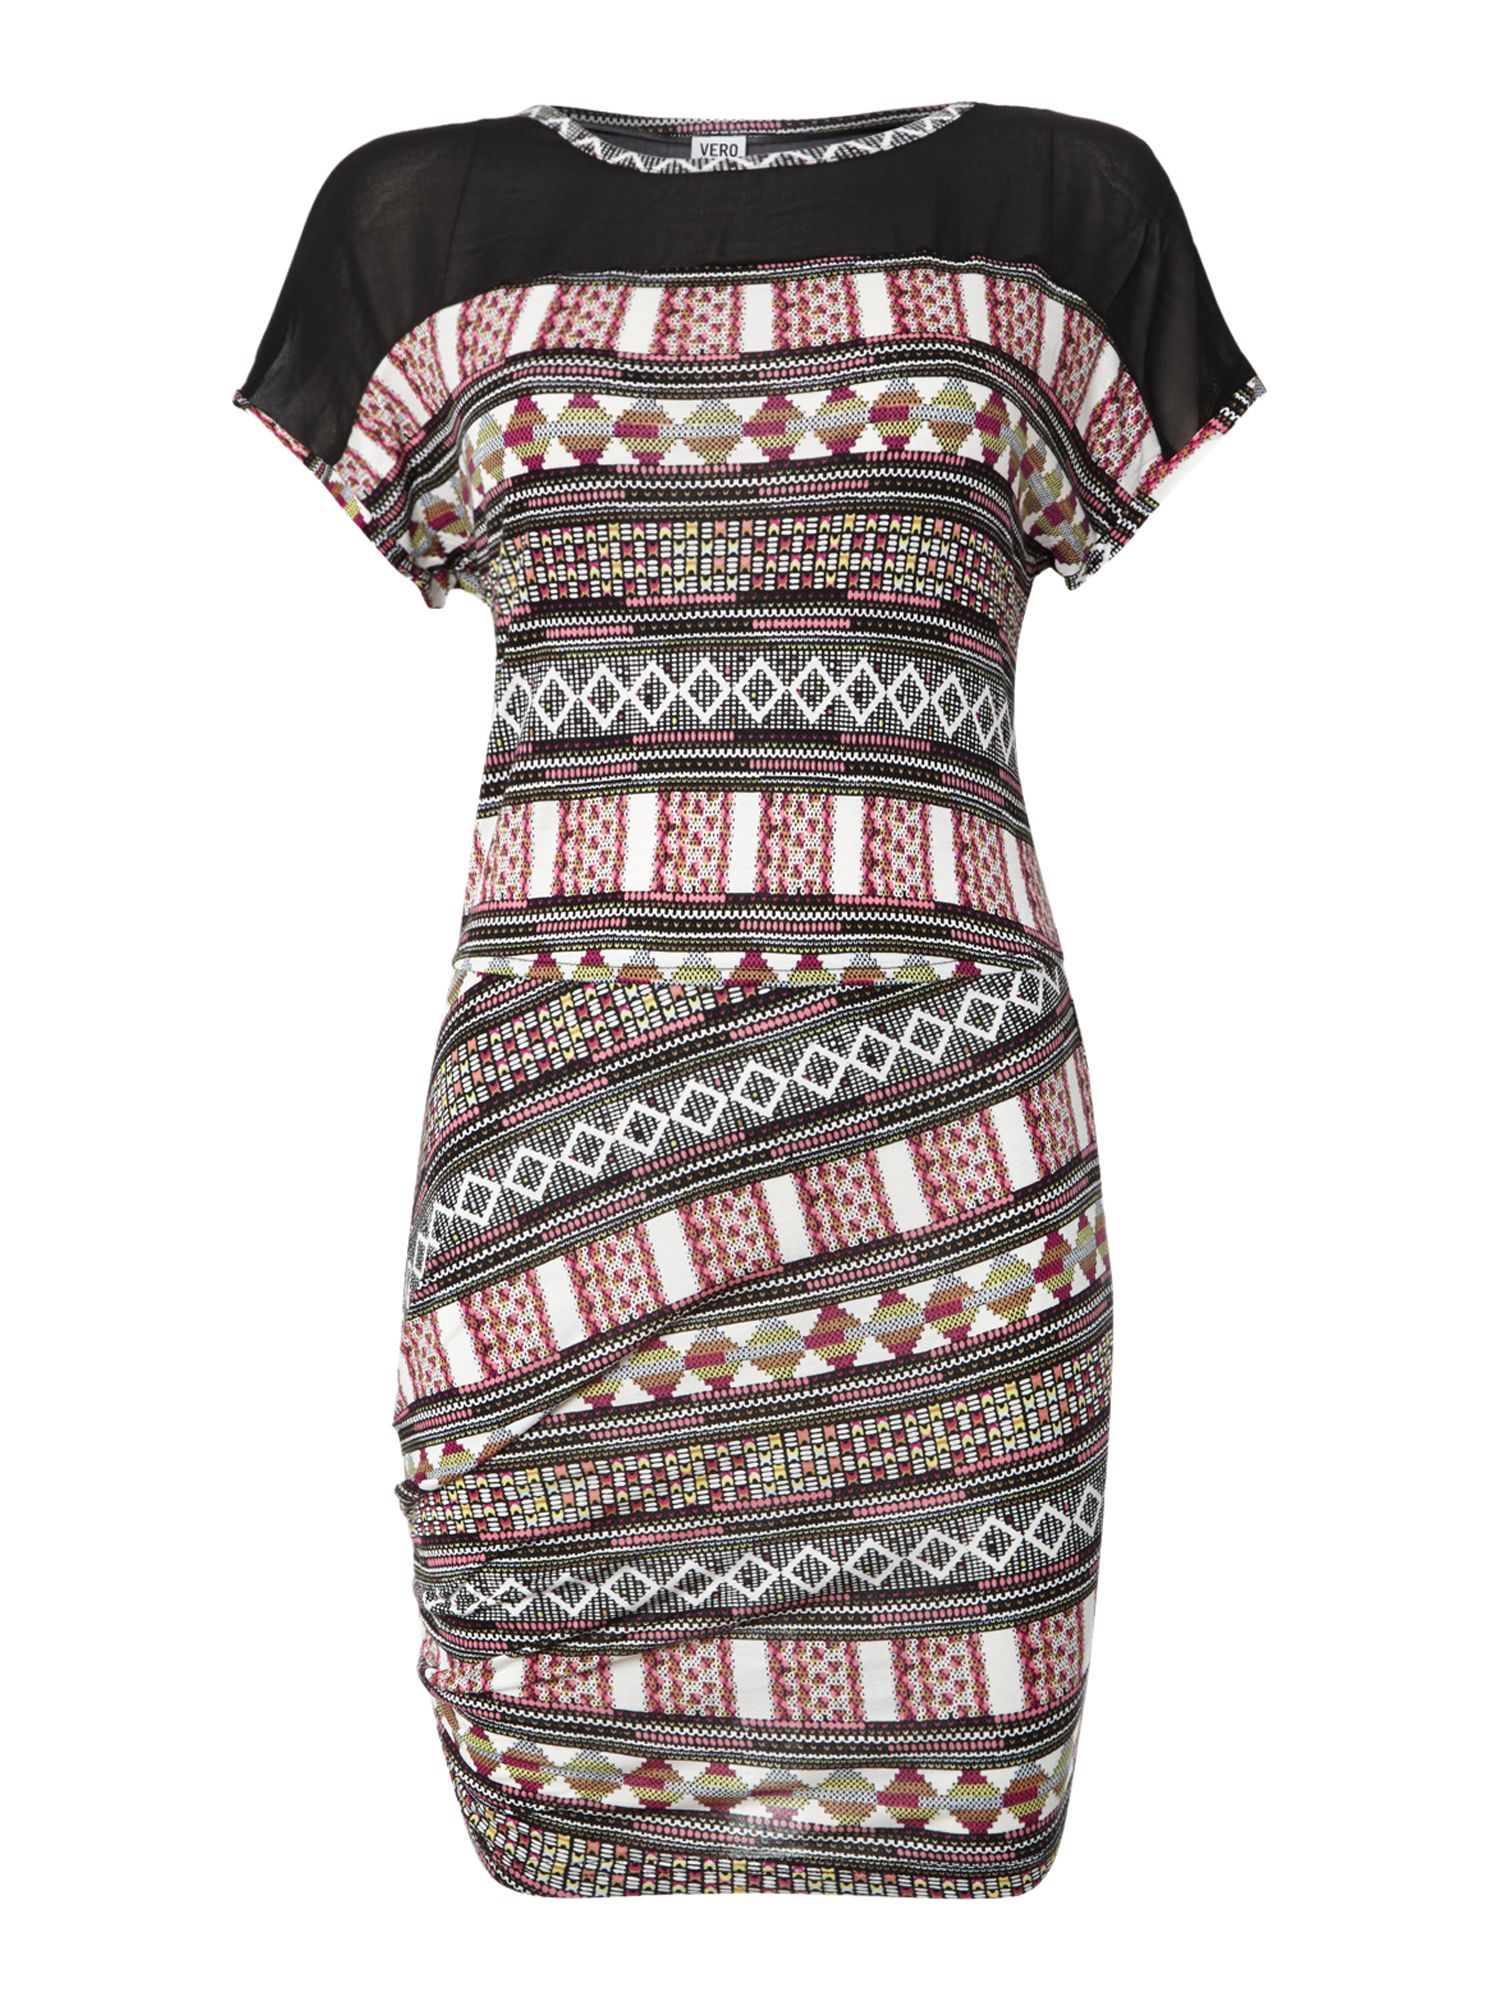 Short sleeve tribal print dress